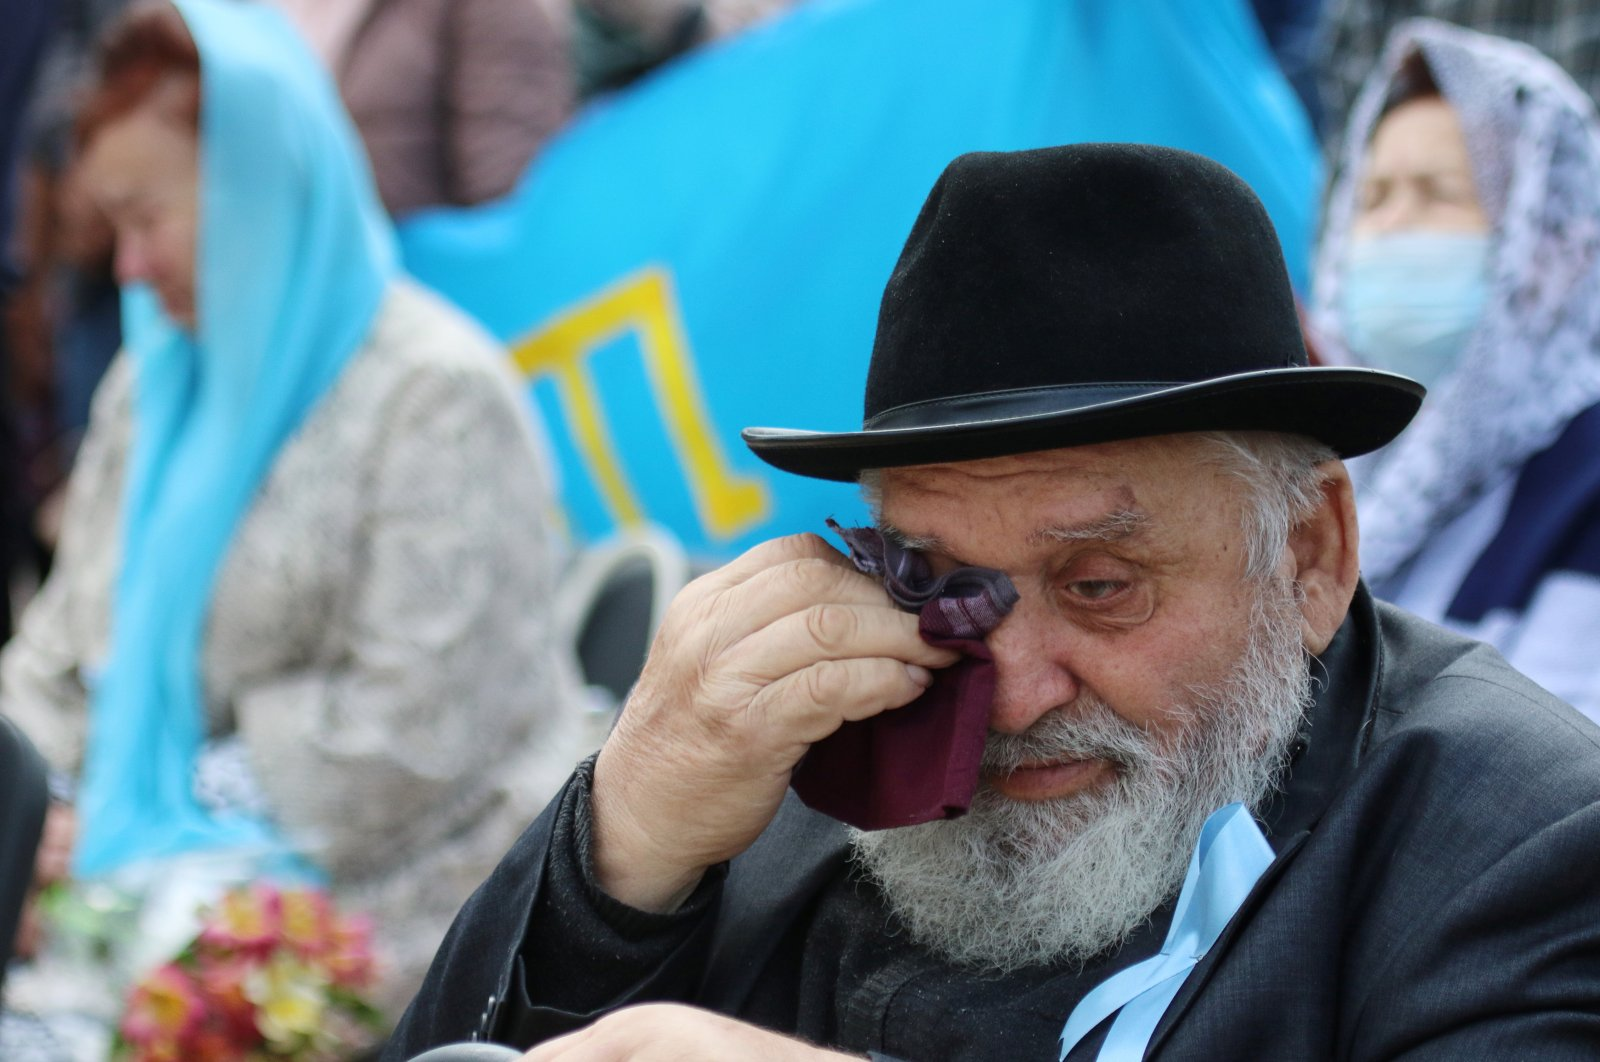 A man reacts during a rally marking the anniversary of the mass deportation of Crimean Tatars from the region in 1944, in Yevpatoriya, Crimea, May 18, 2021. (Reuters Photo)